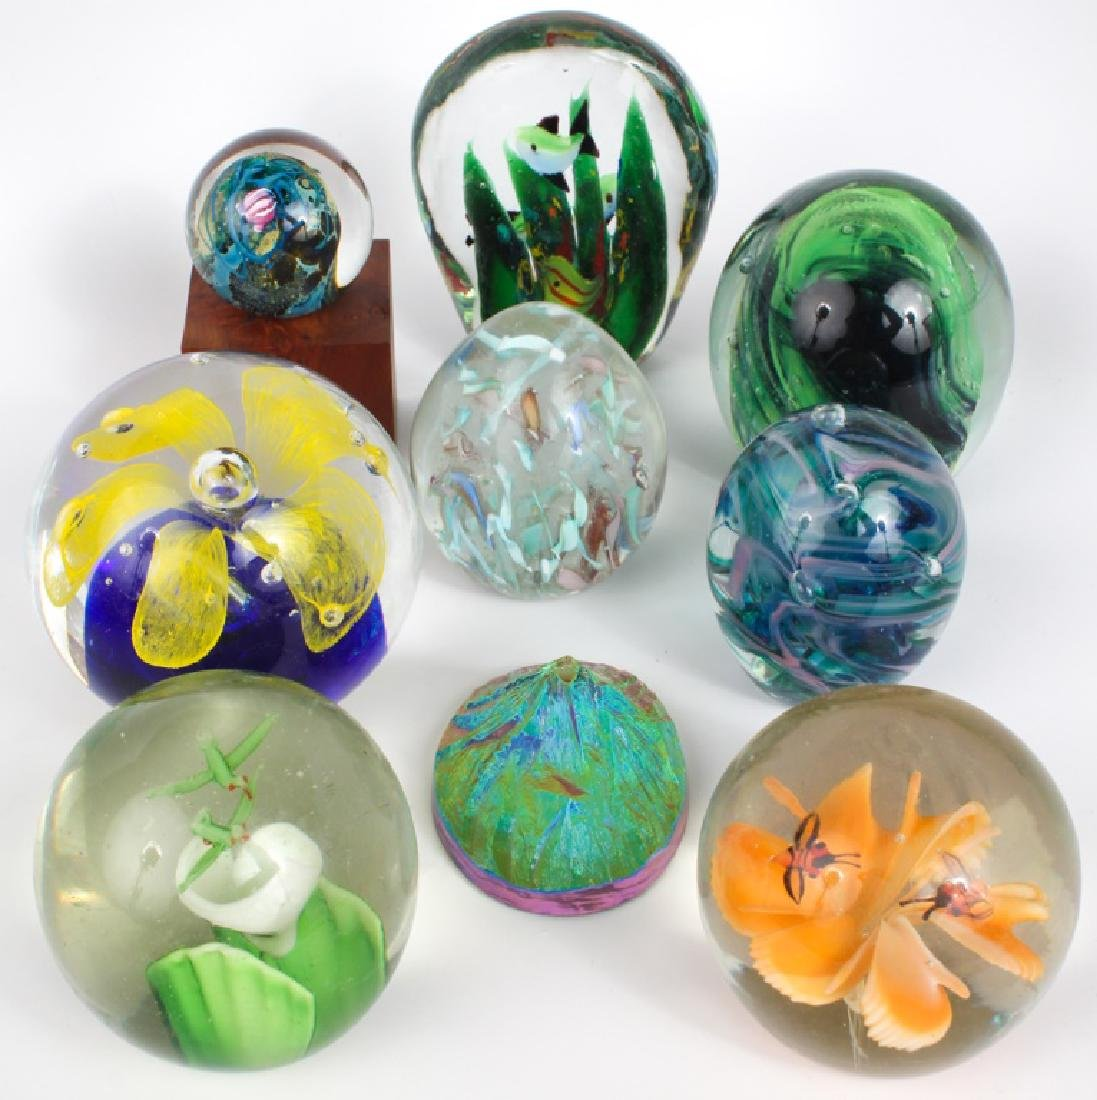 DECORATIVE GLASS PAPERWEIGHTS - LOT OF 6